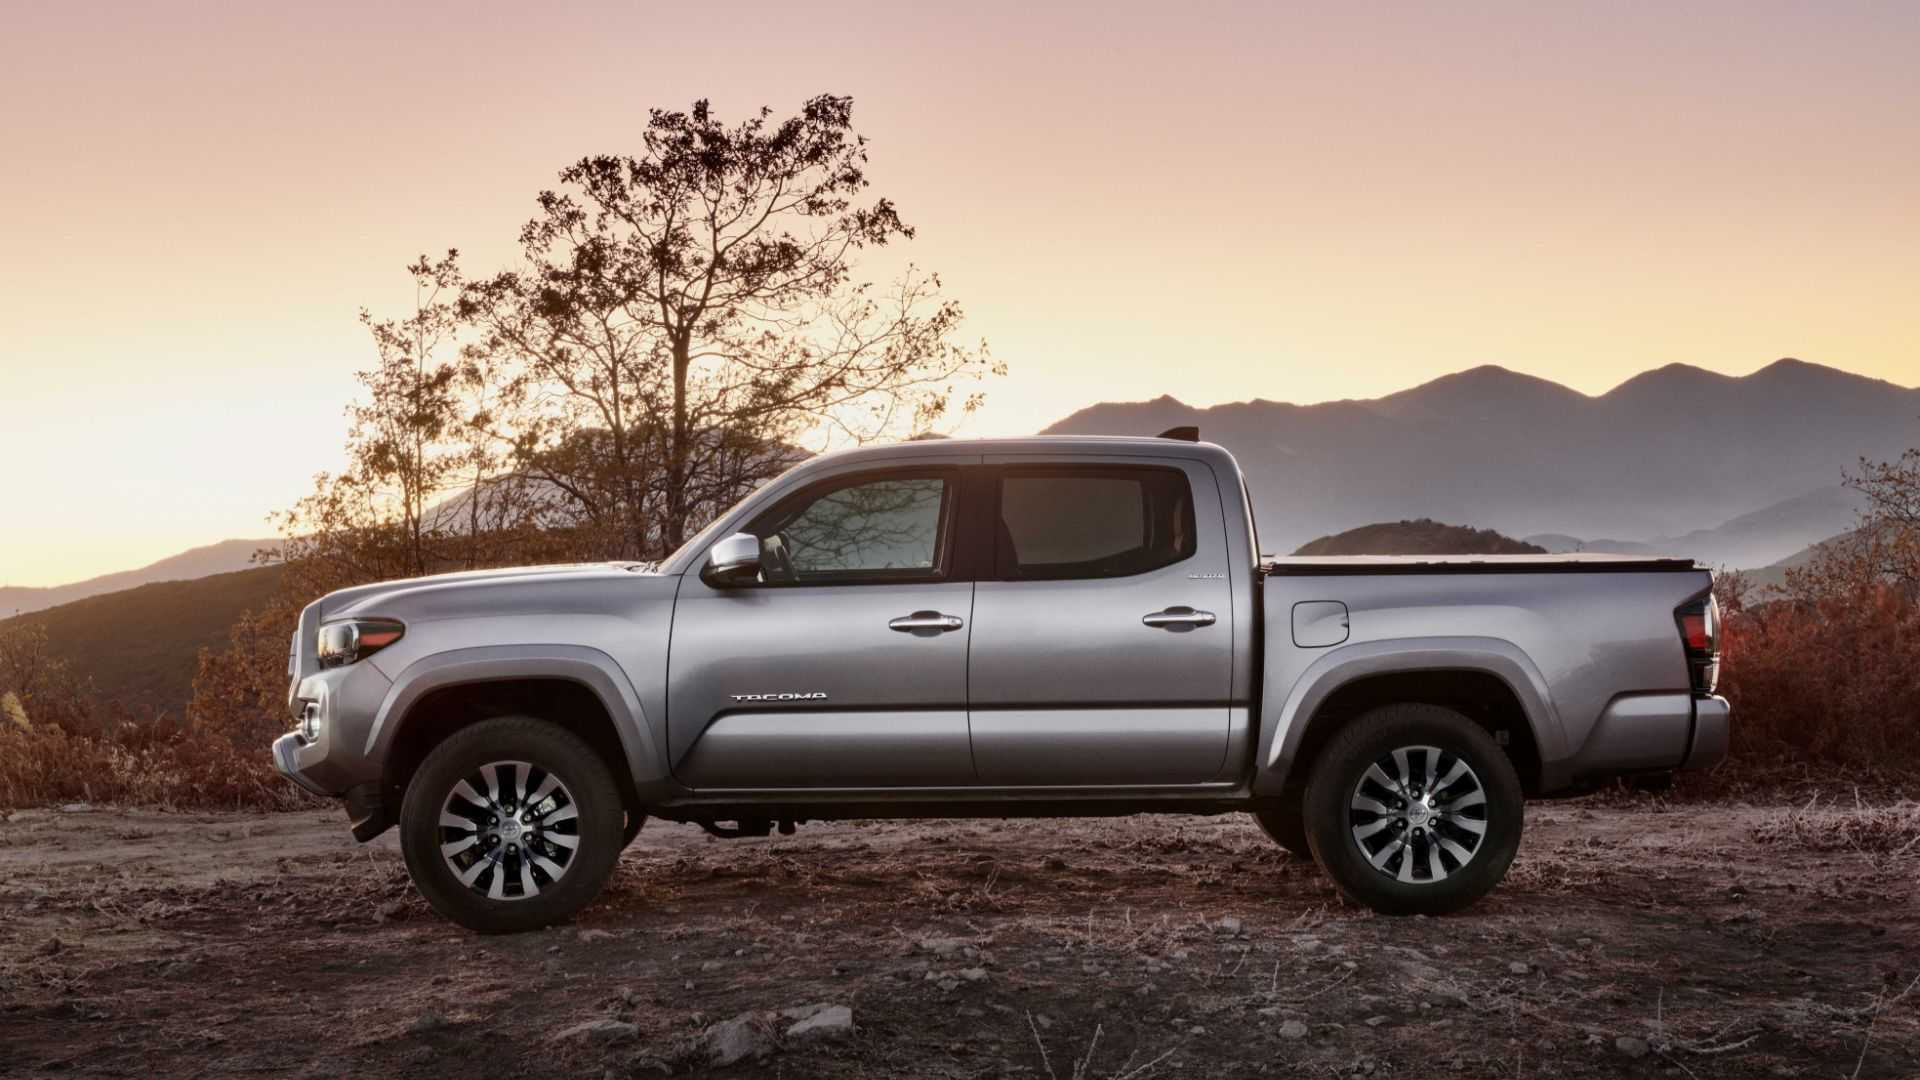 hight resolution of 2020 toyota tacoma facelift 2020 toyota tacoma facelift